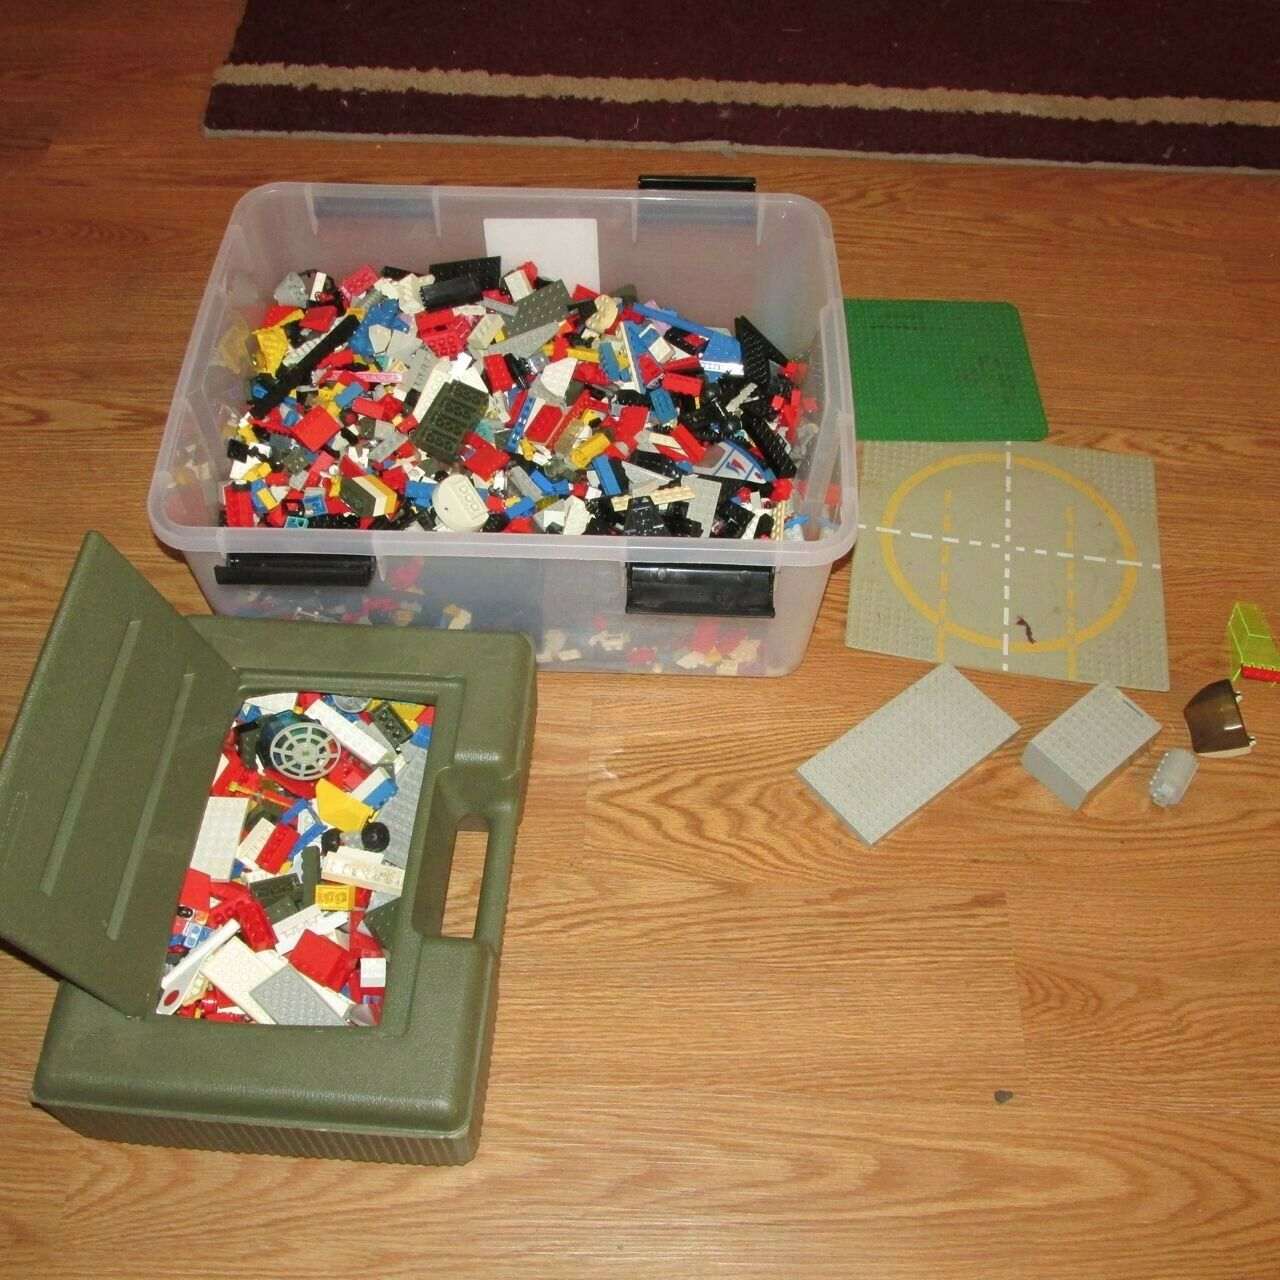 10 lbs of Lego pieces, mostly from european sets of the 1970's w one storage box